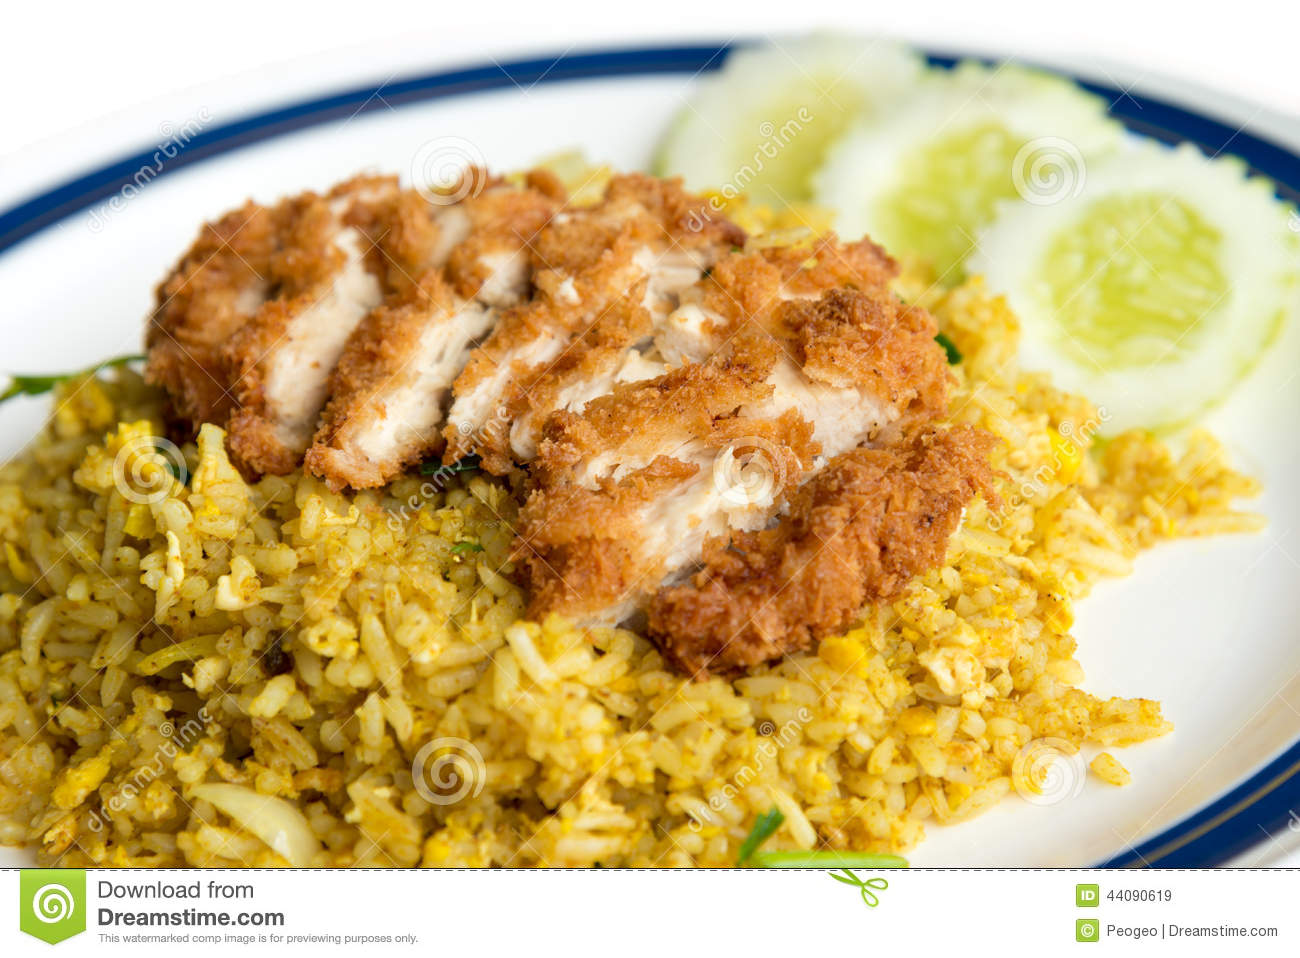 Fried Rice With Crispy Chicken Stock Image - Image: 44090619